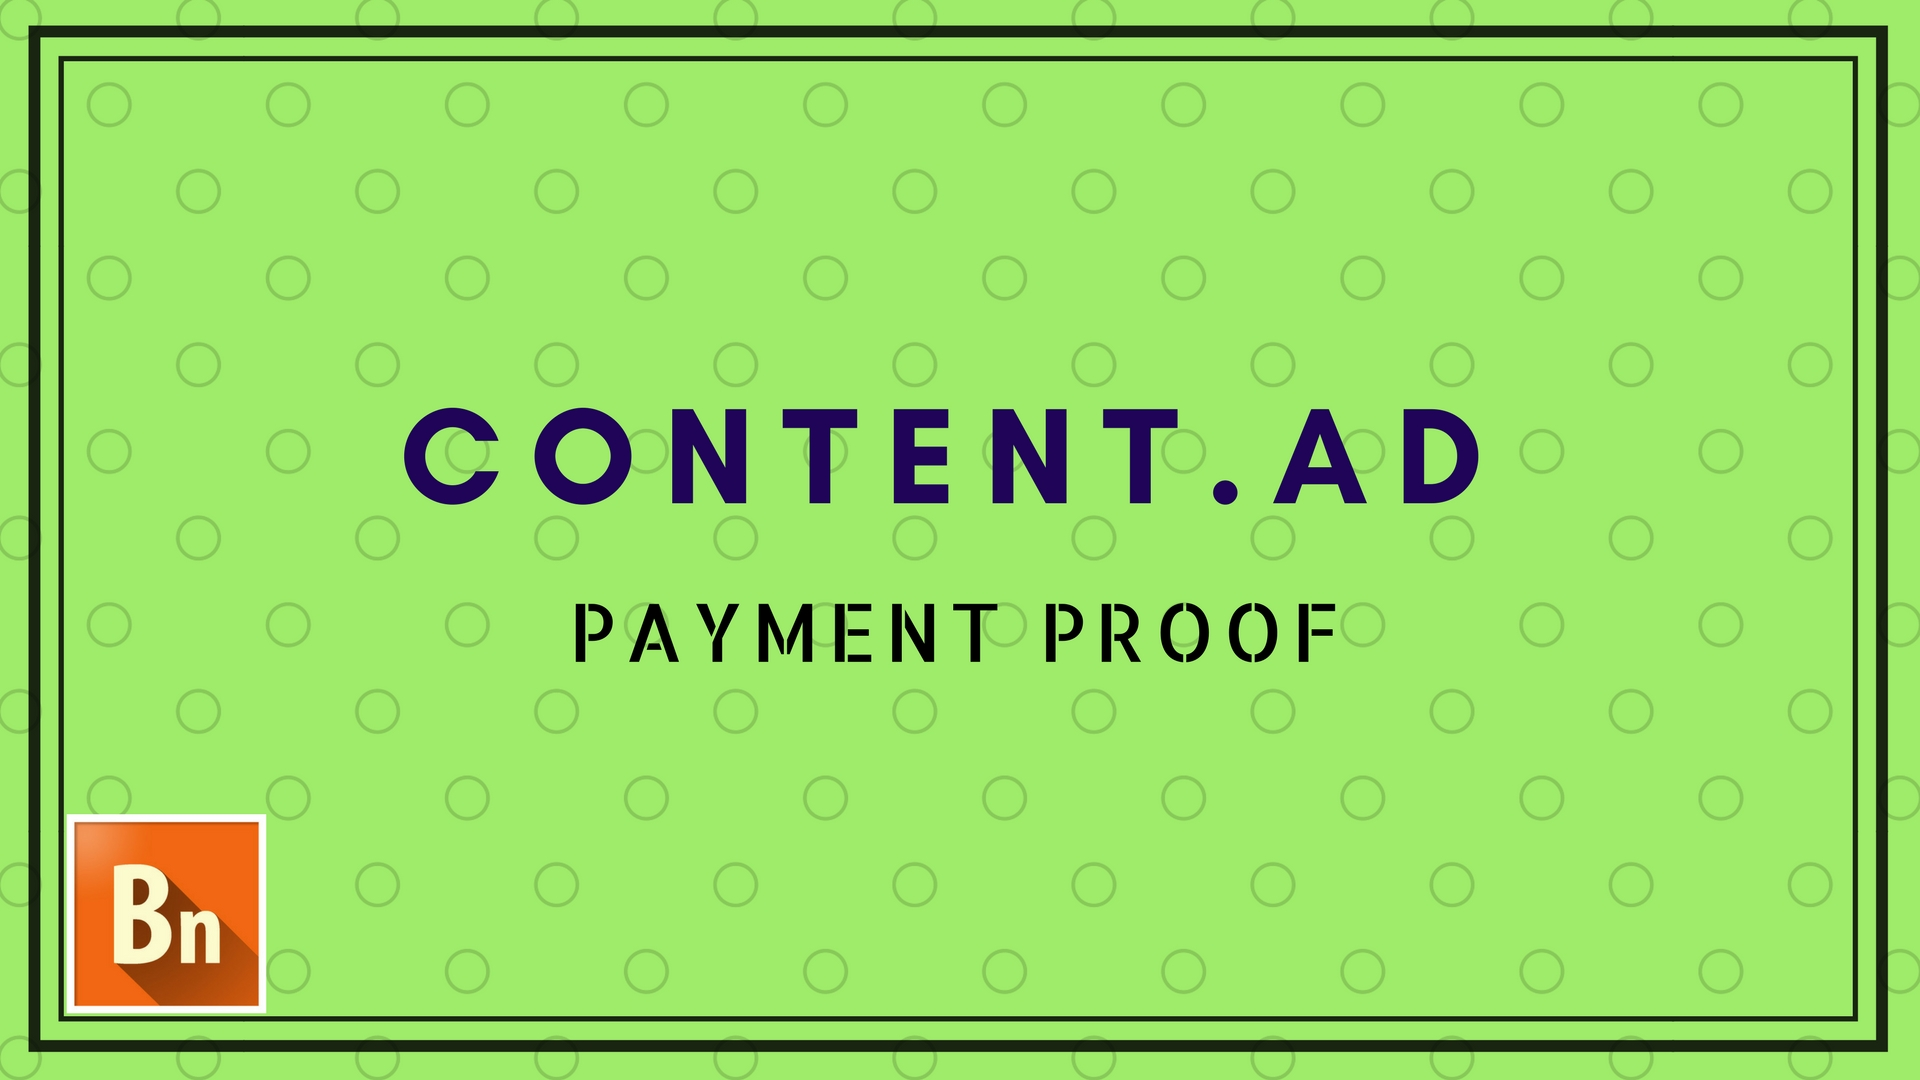 Content.Ad Payment Proof for Publishers 2018